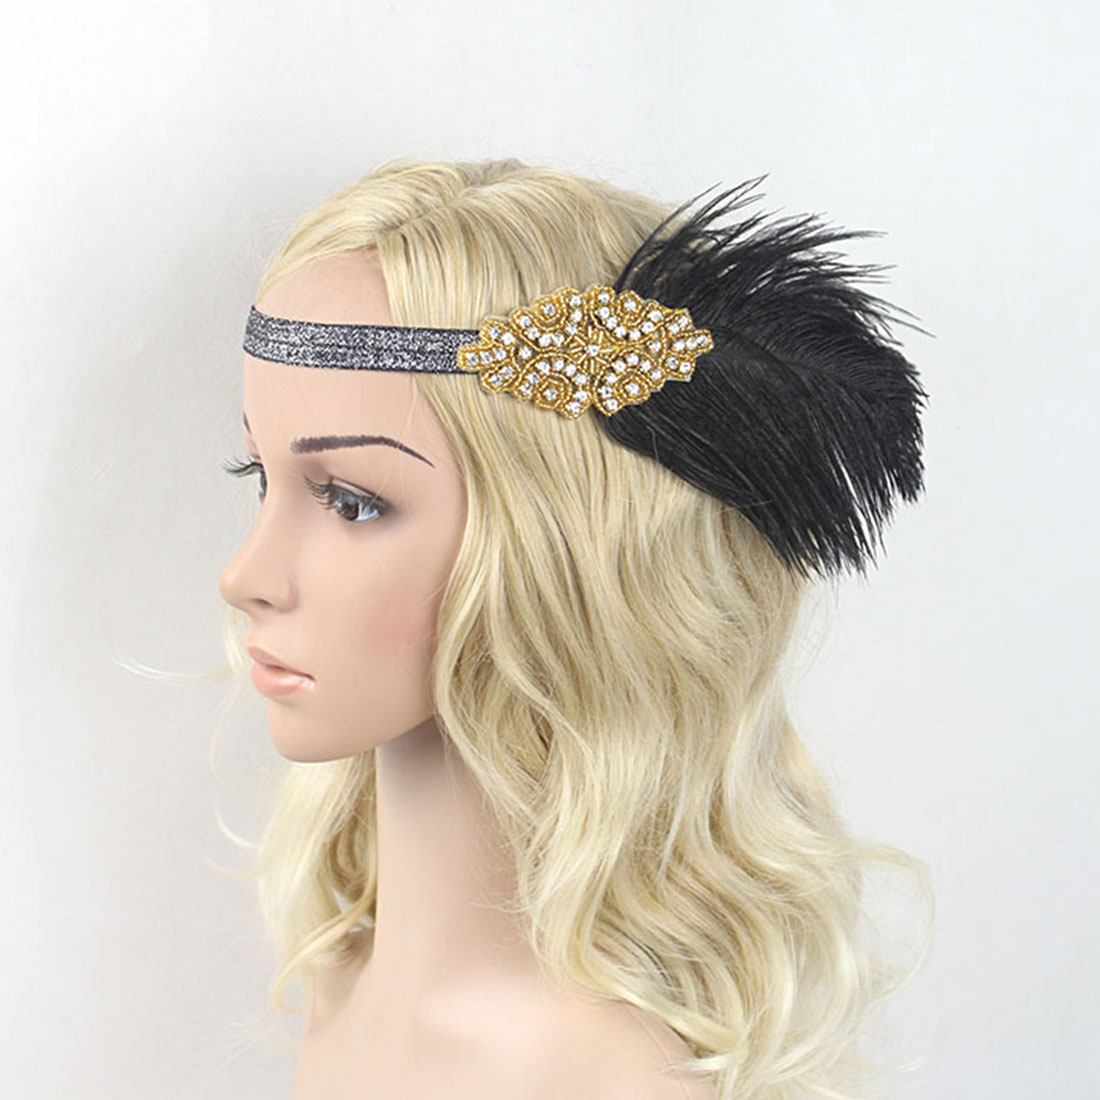 Girls Novelty Feather Headband White Rhinestone Beaded  Hairband  Vintage Party Headpiece  Hair Accessories You Deserve One headpiece